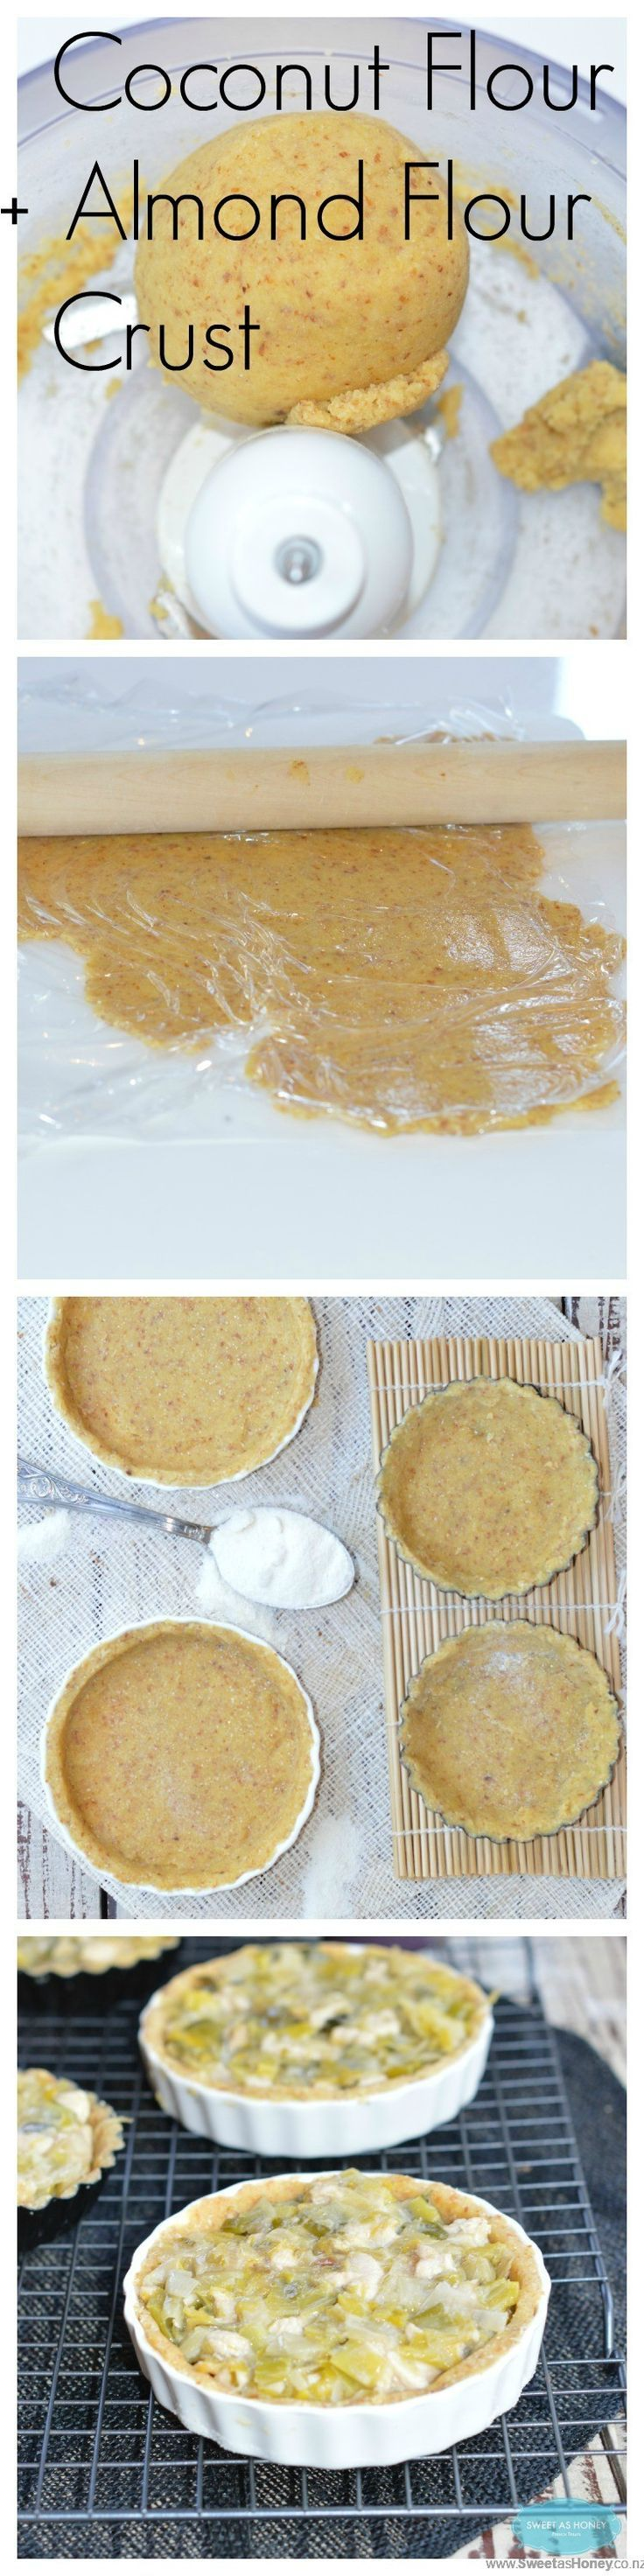 Grain Free pie crust made with almond meal and Coconut flour. Sugar free. Perfect for a dessert pie or lunch pie. By www.sweetashoney....